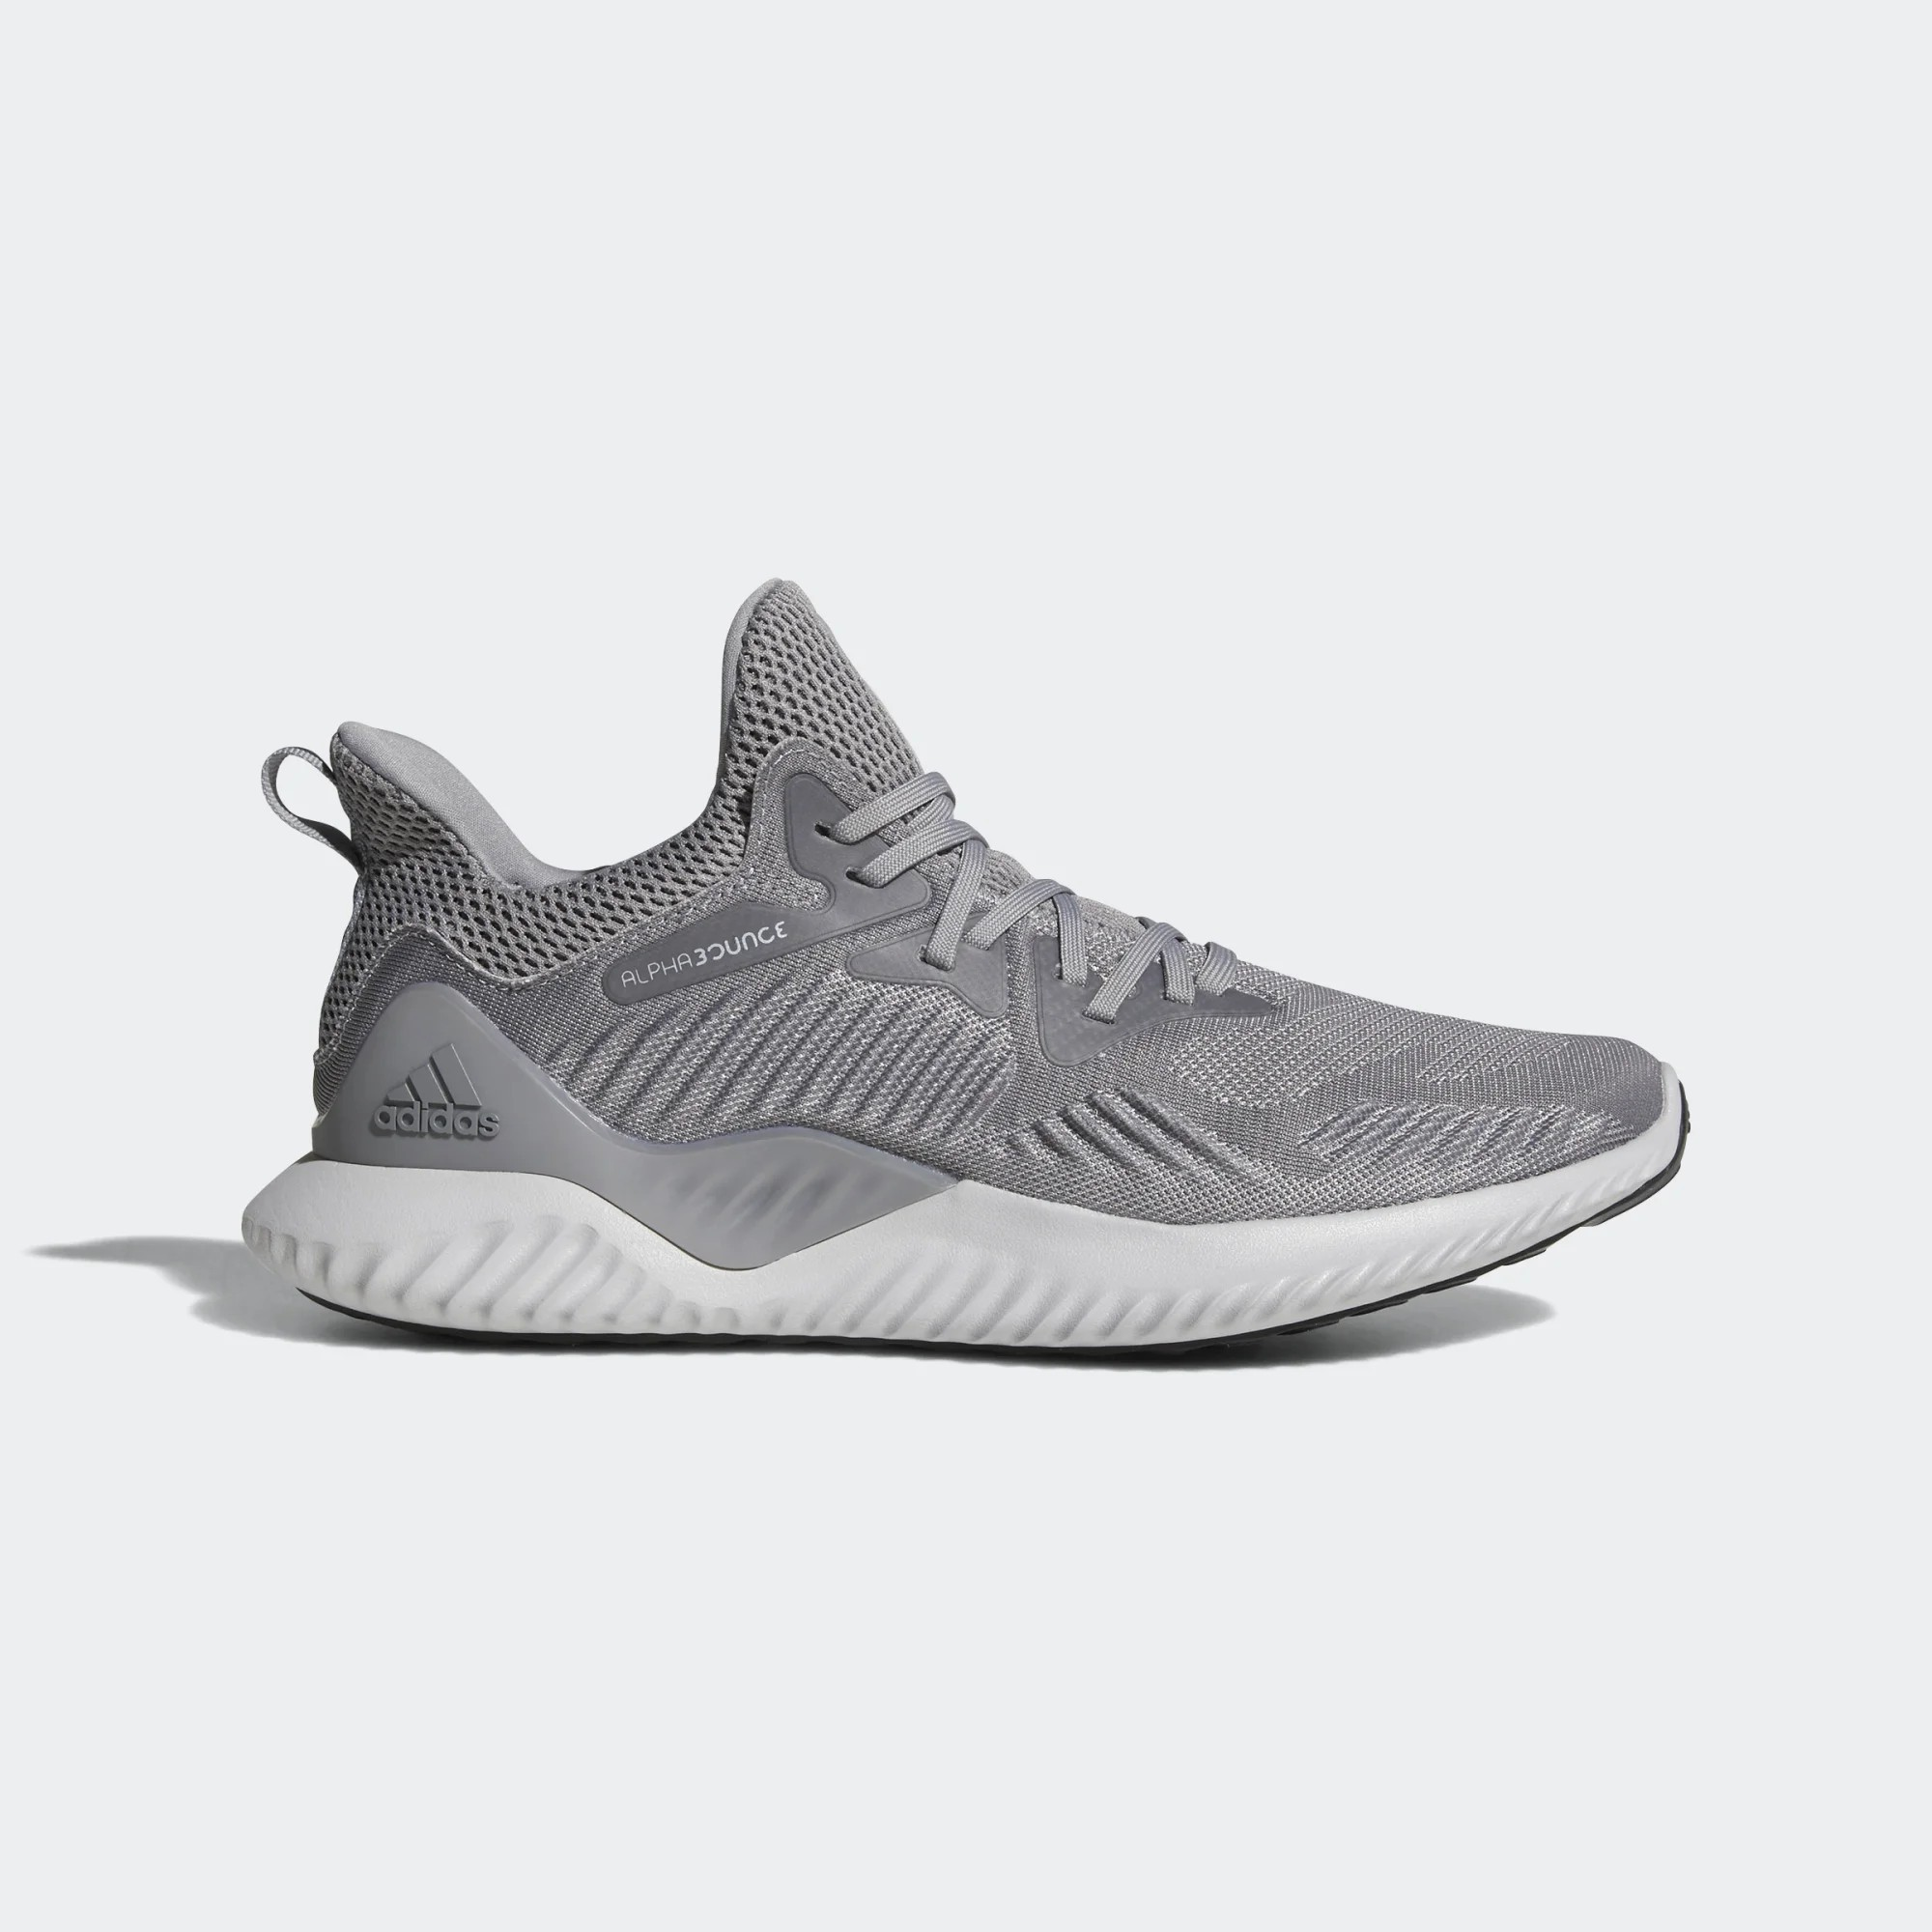 adidas Alphabounce Beyond Shoes Grey CG4765